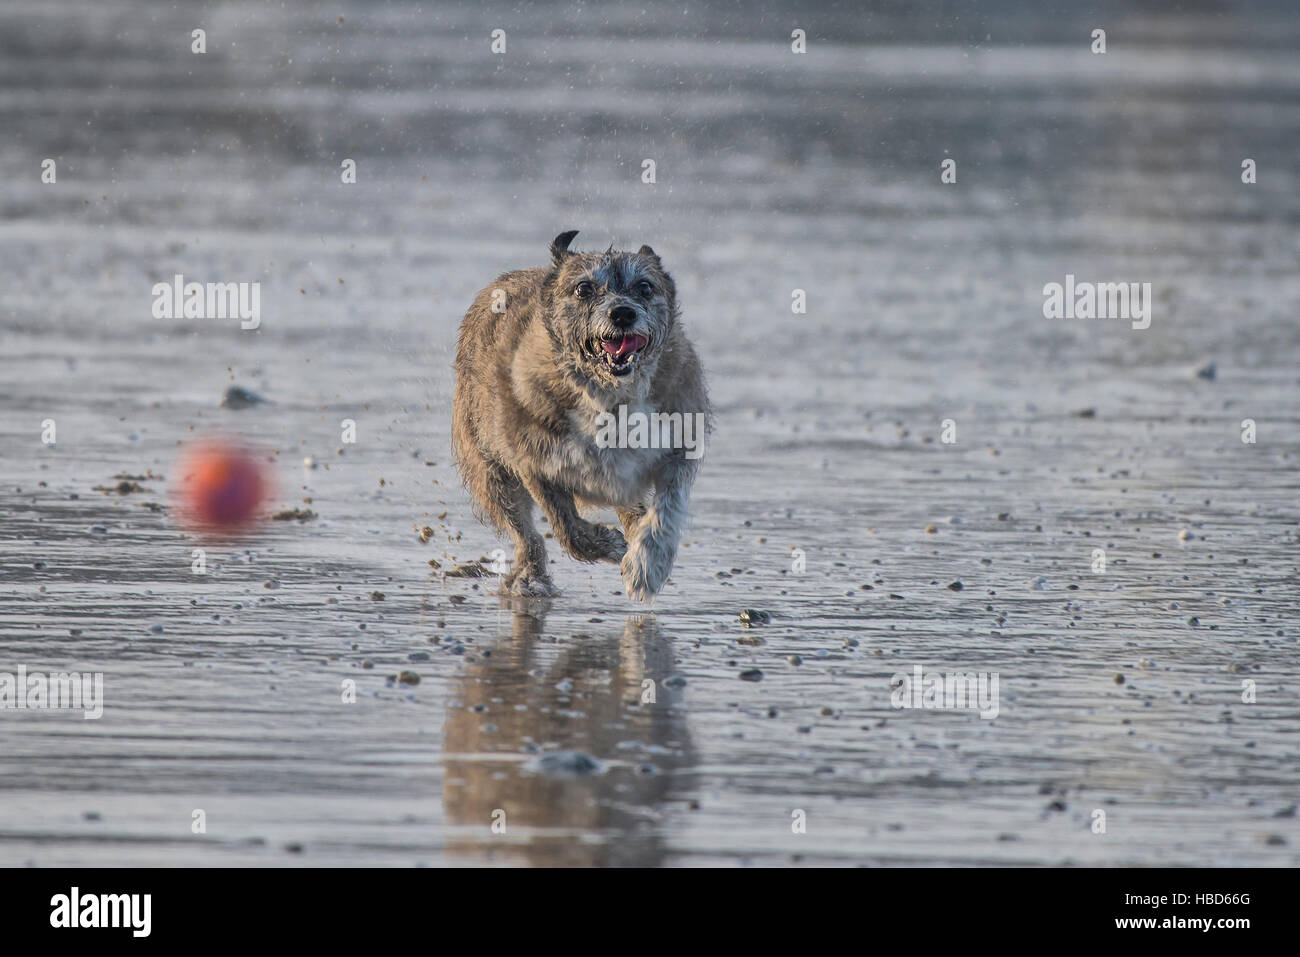 A small dog chasing a ball on dog friendly Fistral Beach in Newquay, Cornwall. - Stock Image